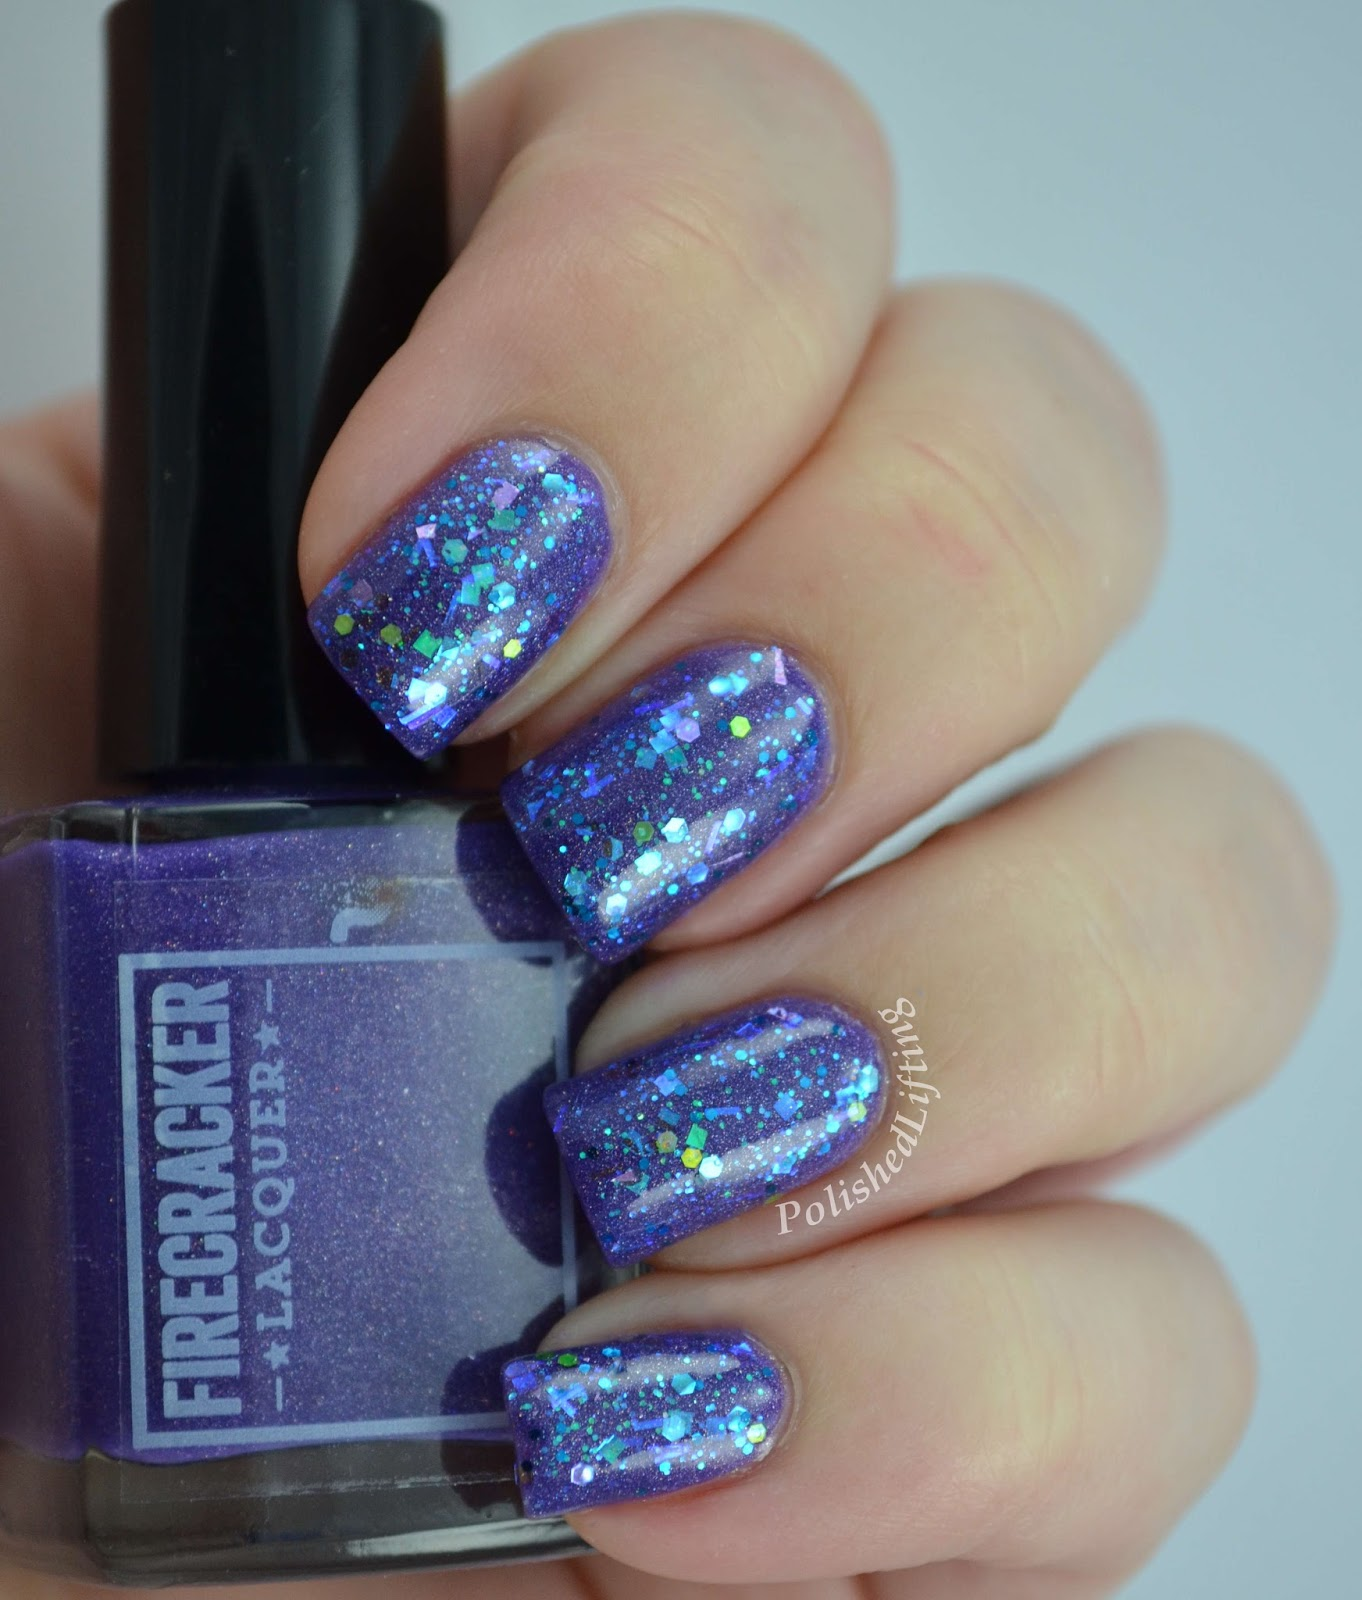 Enchanted Polish Freeze Machine Firecracker Lacquer Forever With Me